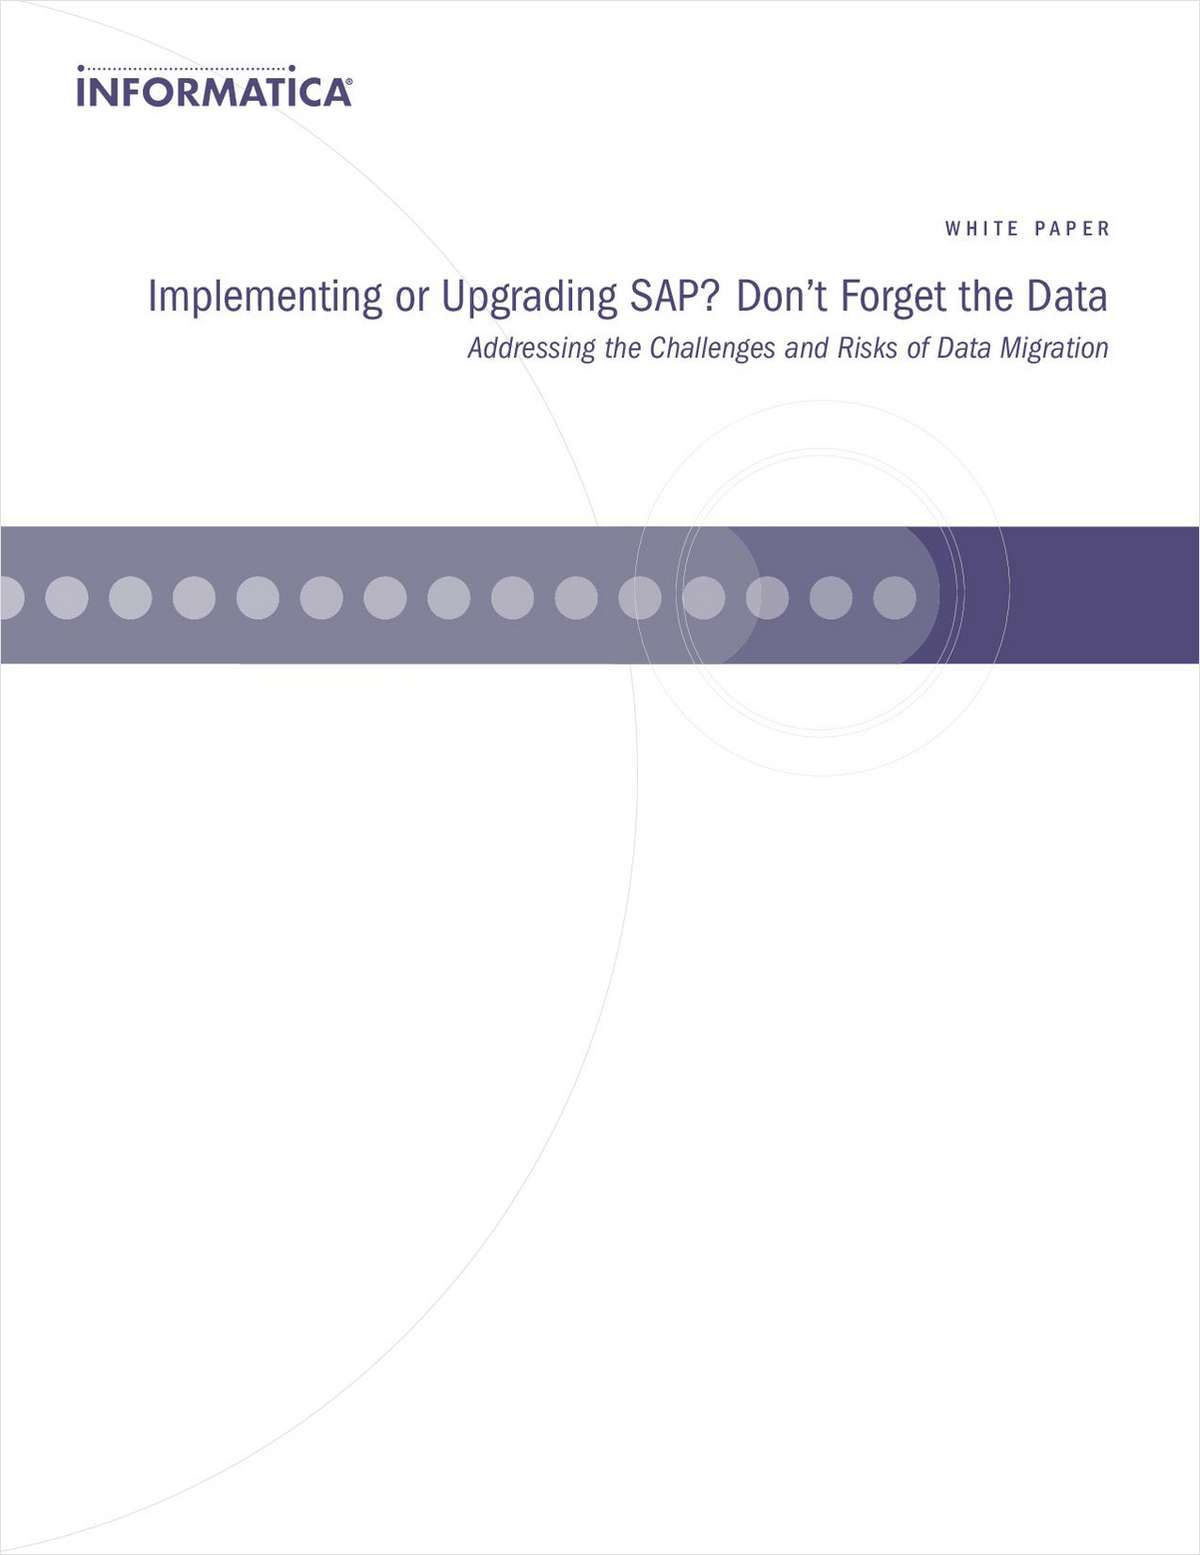 Implementing or Upgrading SAP? Don't Forget the Data: Addressing the Challenges and Risks of Data Migration